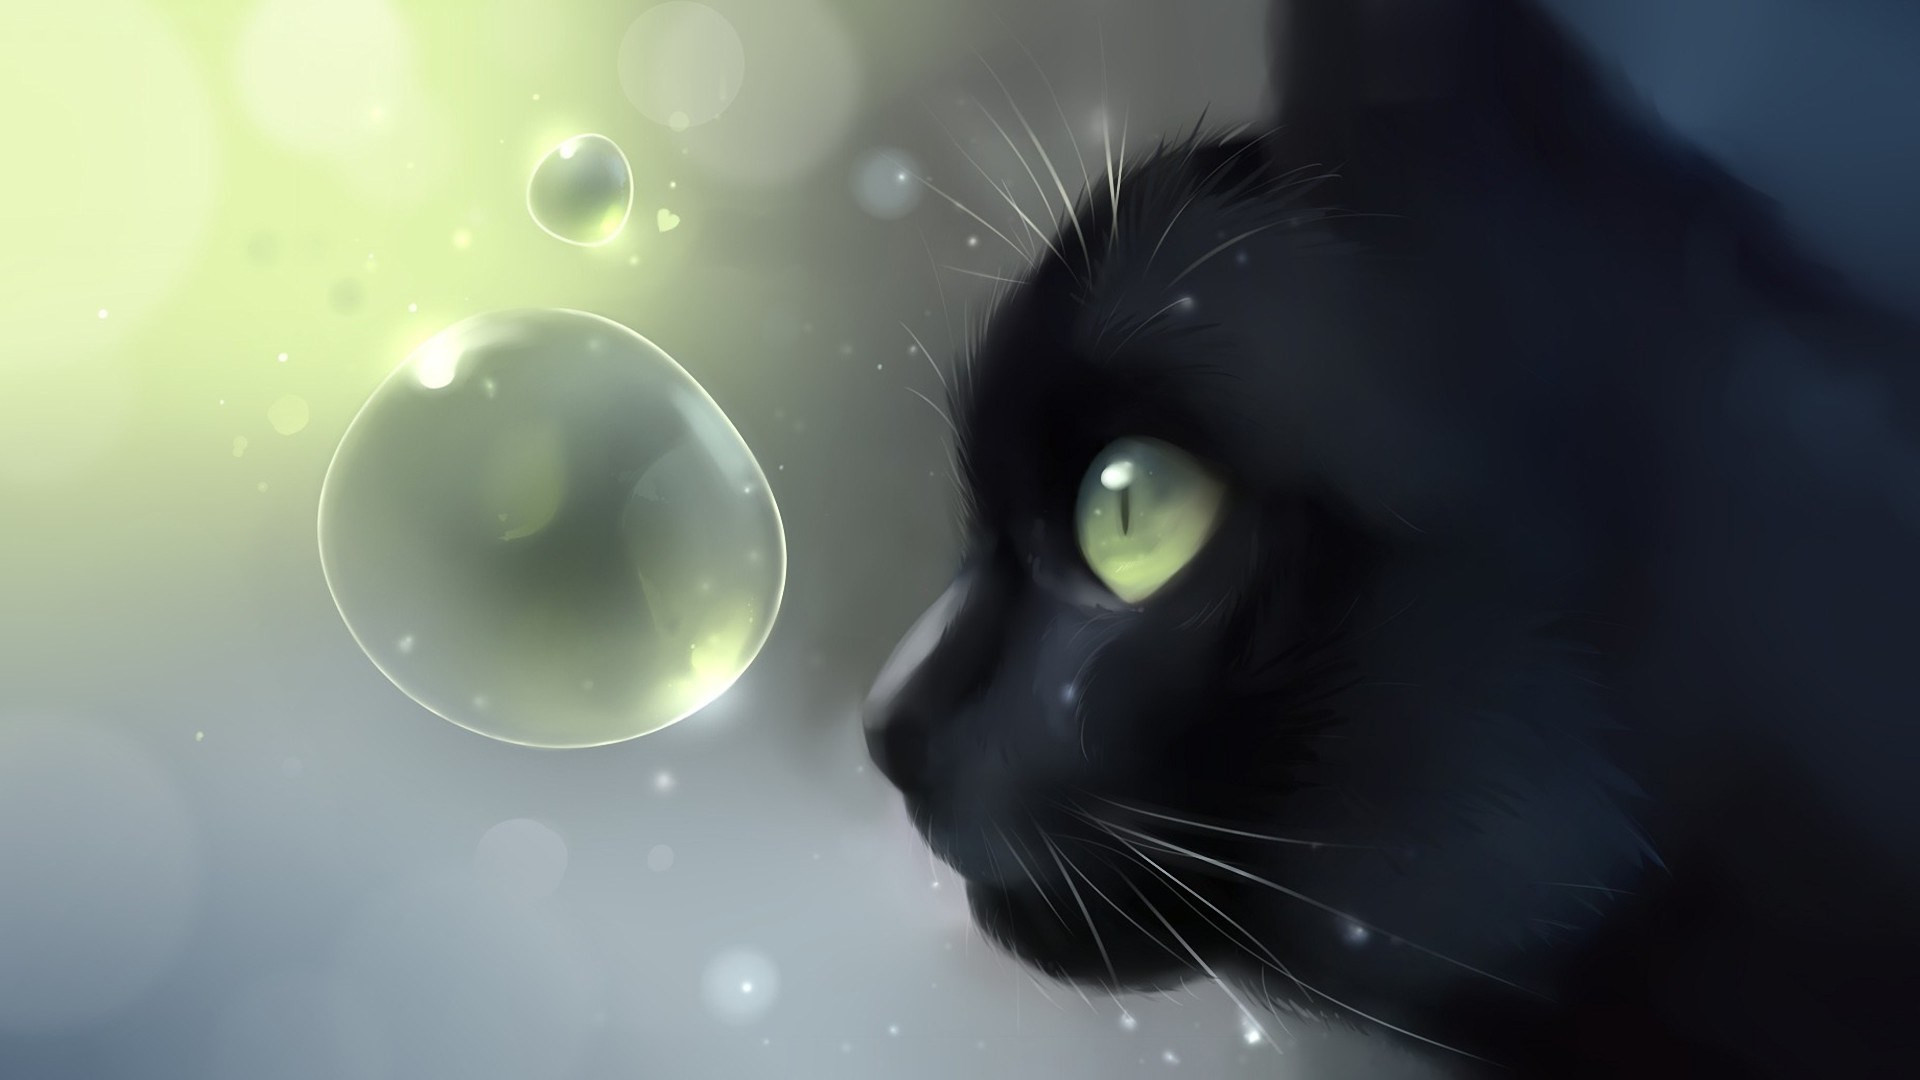 1920x1080 Likeable Drawn Black Cat Wallpaper Hd - Pencil And In Color Drawn Black Cat  together with